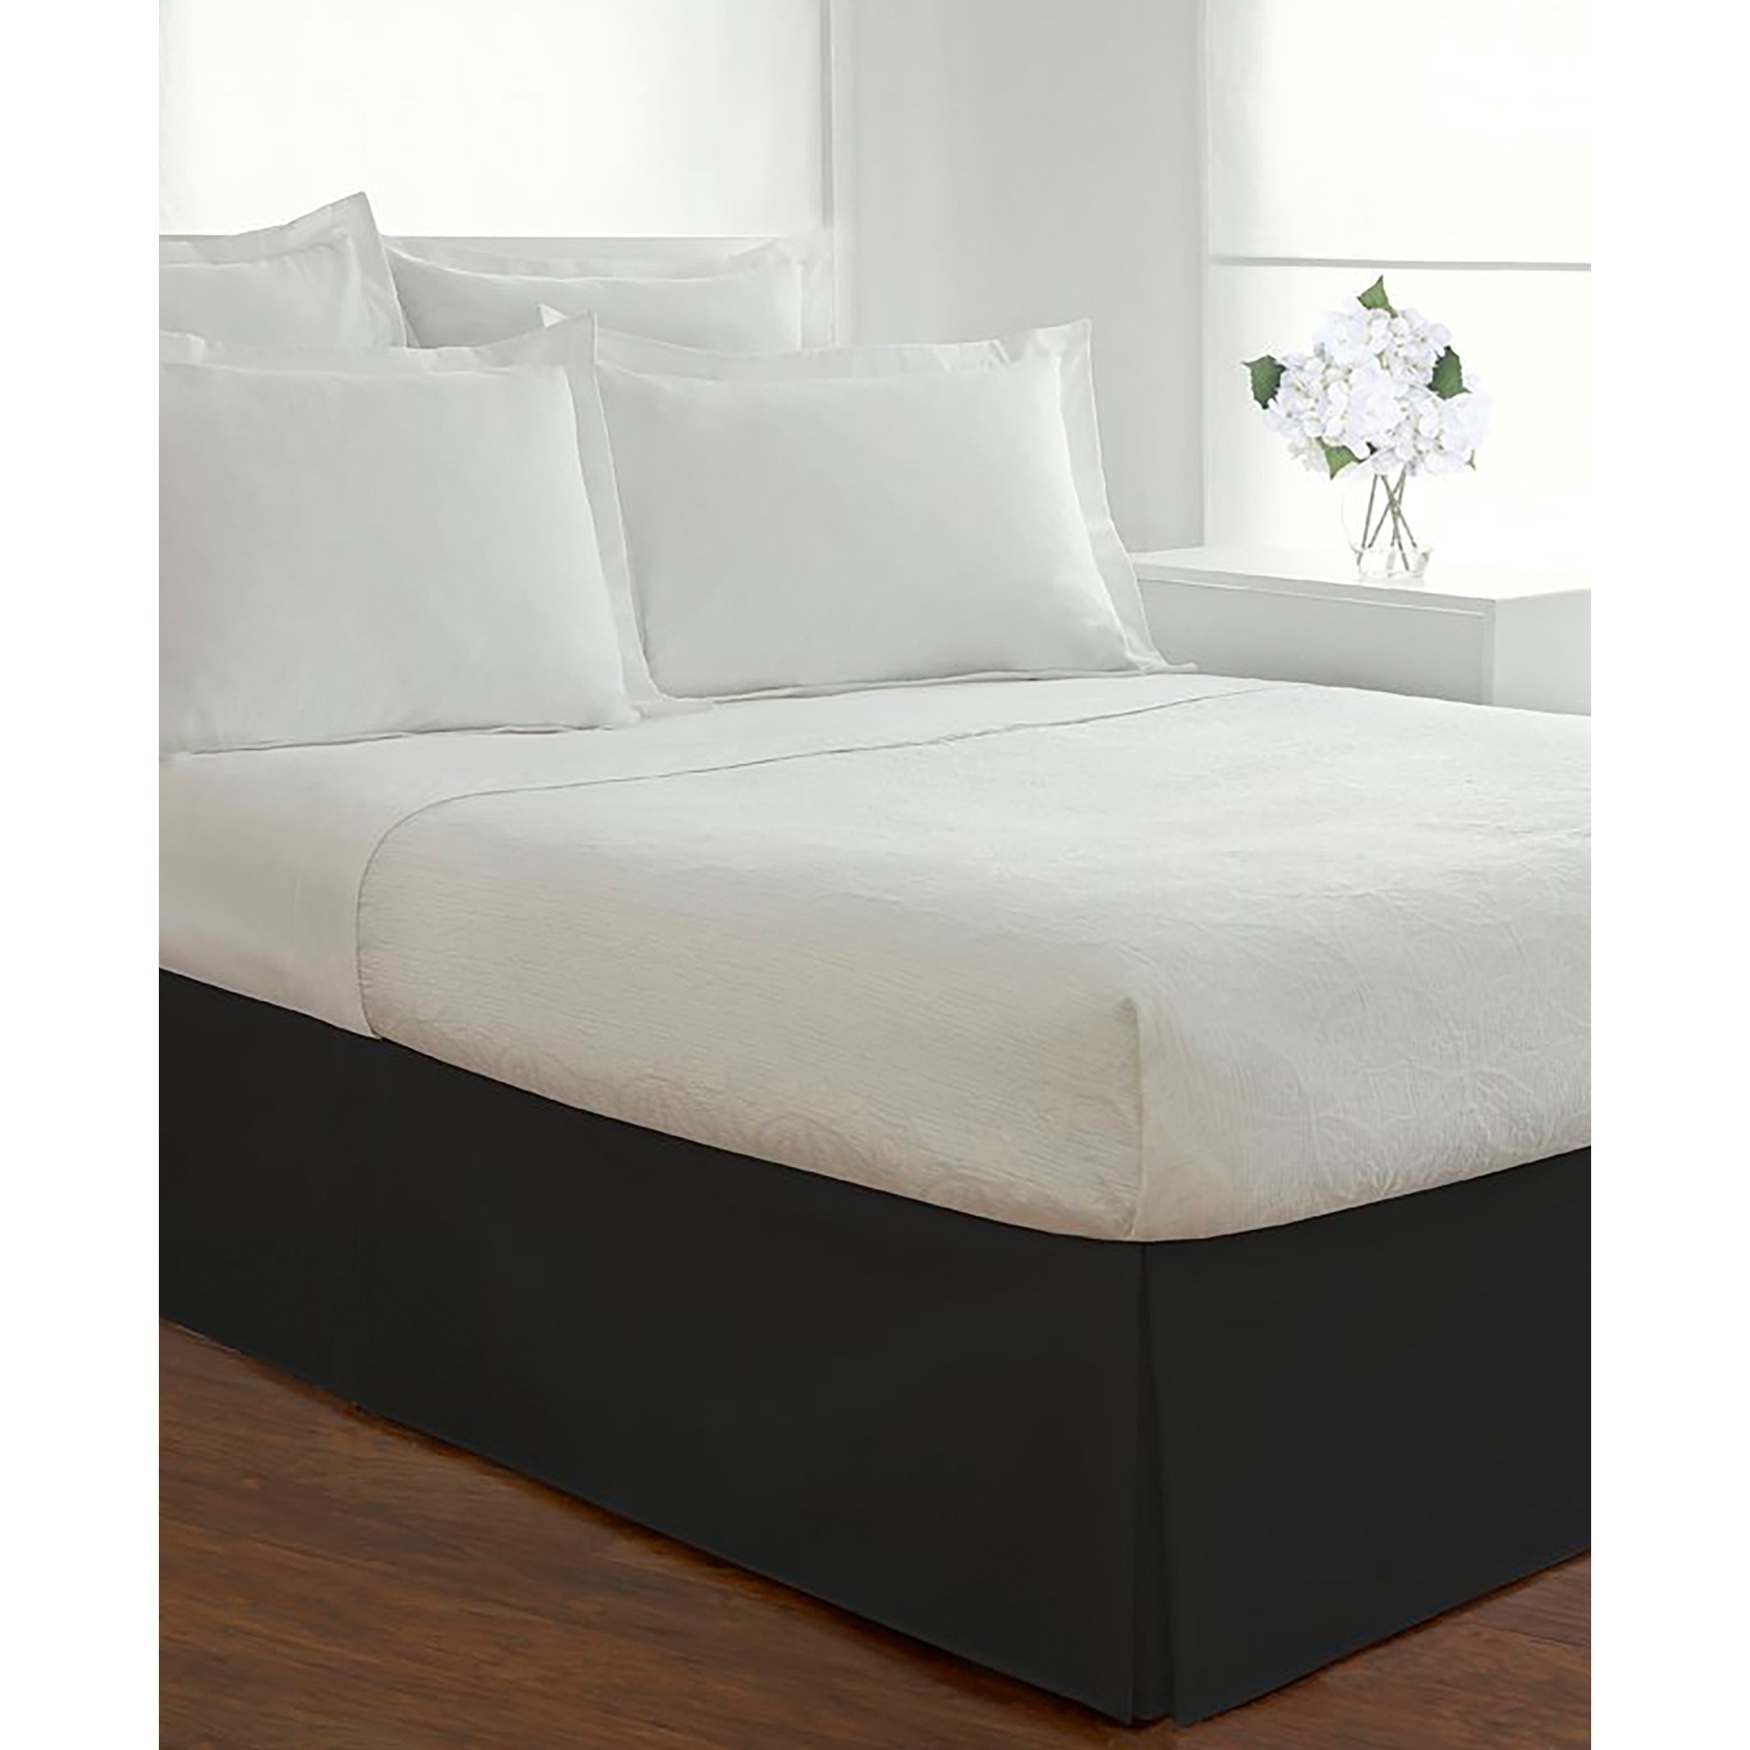 "Luxury Hotel Classic Tailored 14"" Drop Black Bed Skirt,"